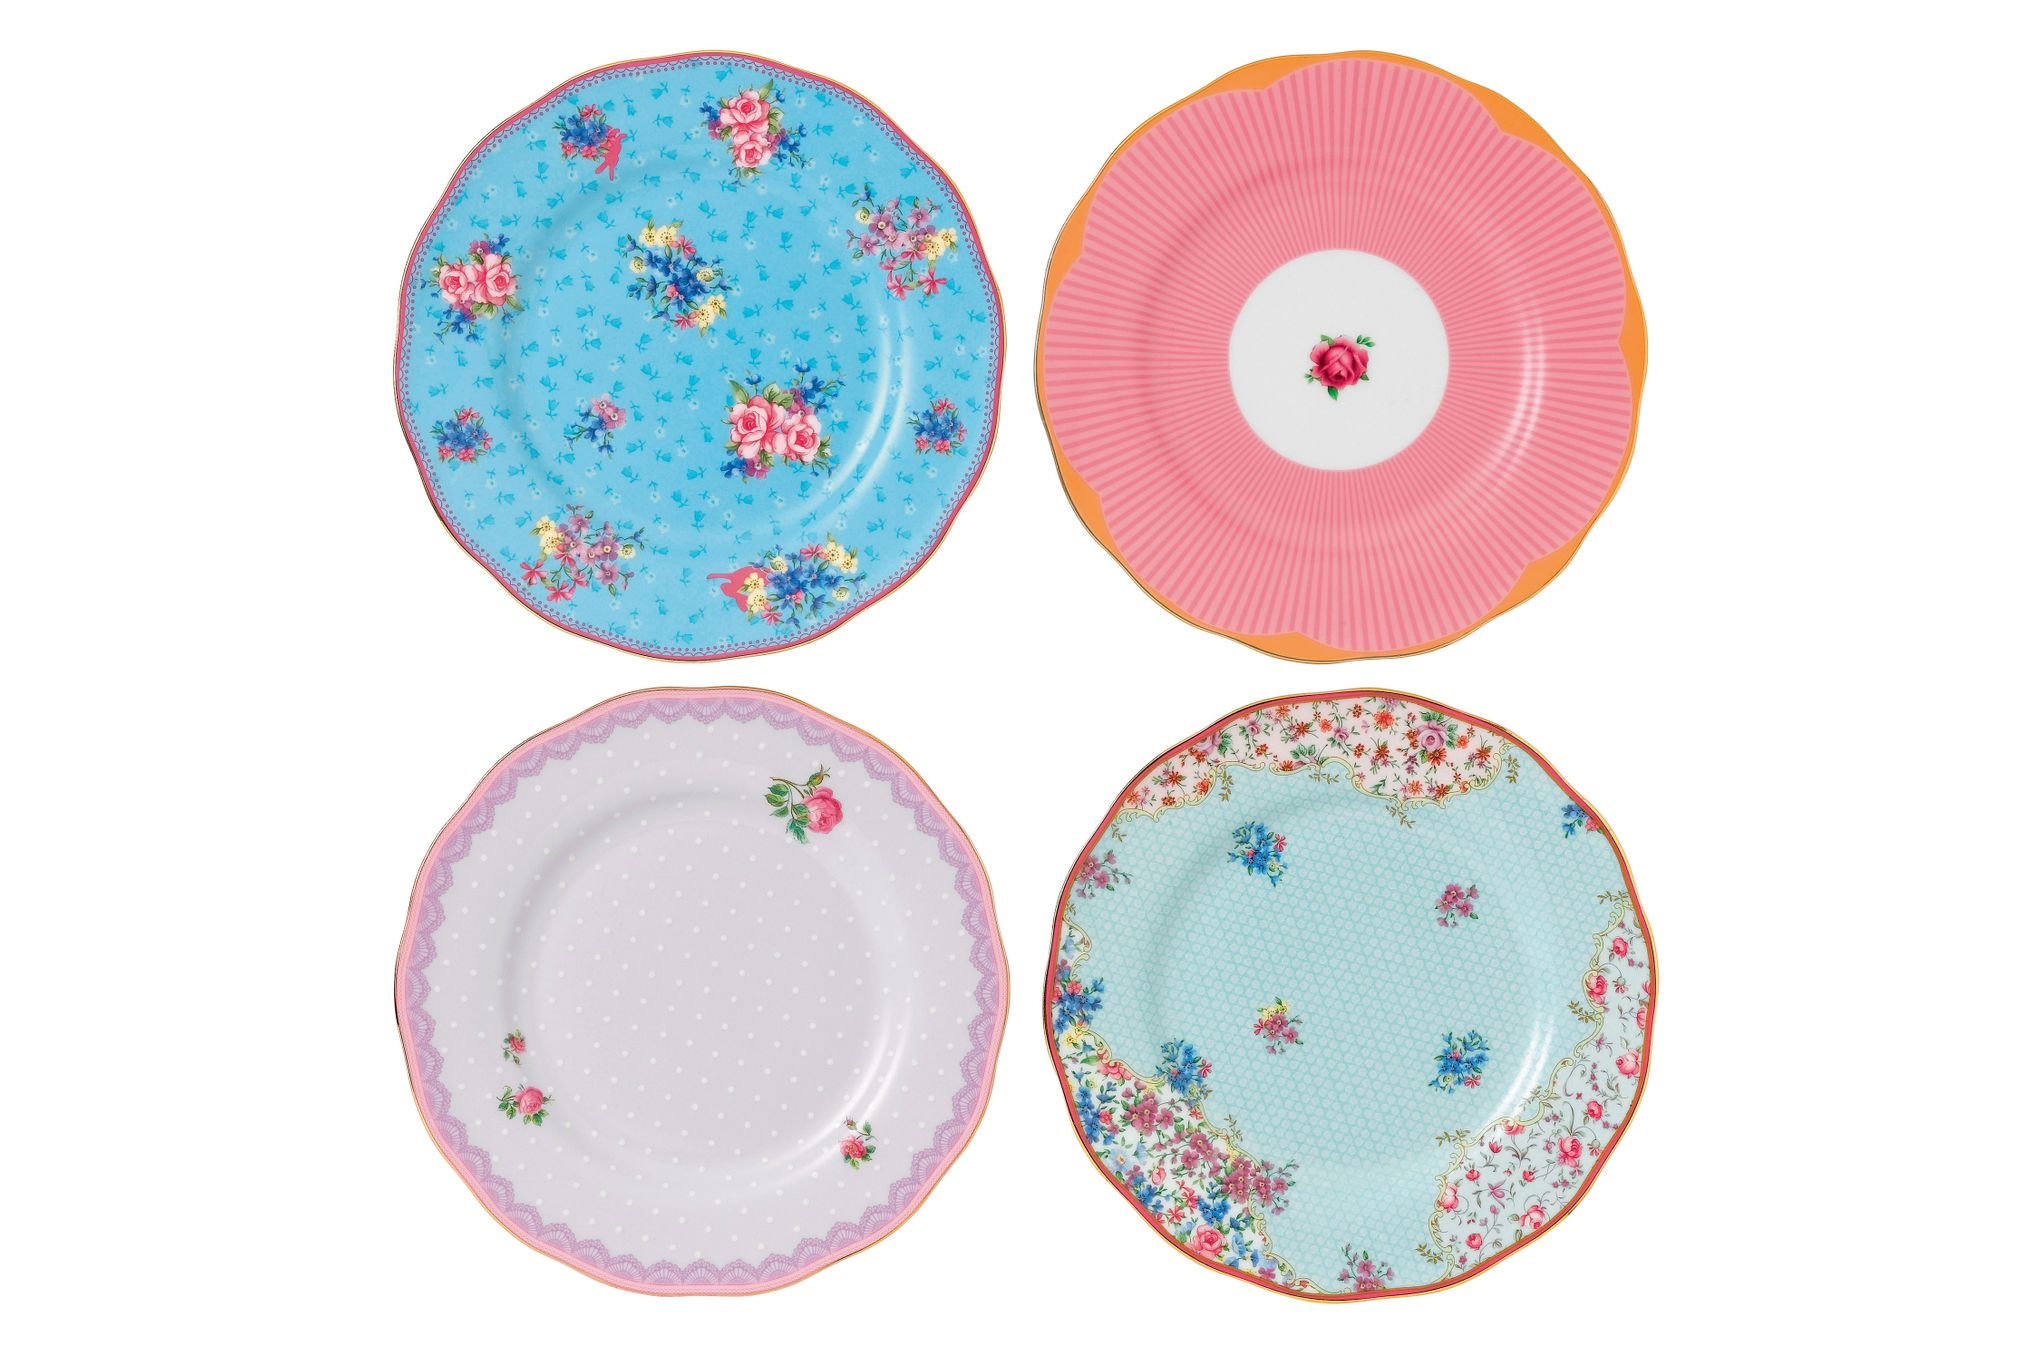 Royal Albert Candy Collection Set of Side Plates Set of 4 Mixed Plates 20cm thumb 1